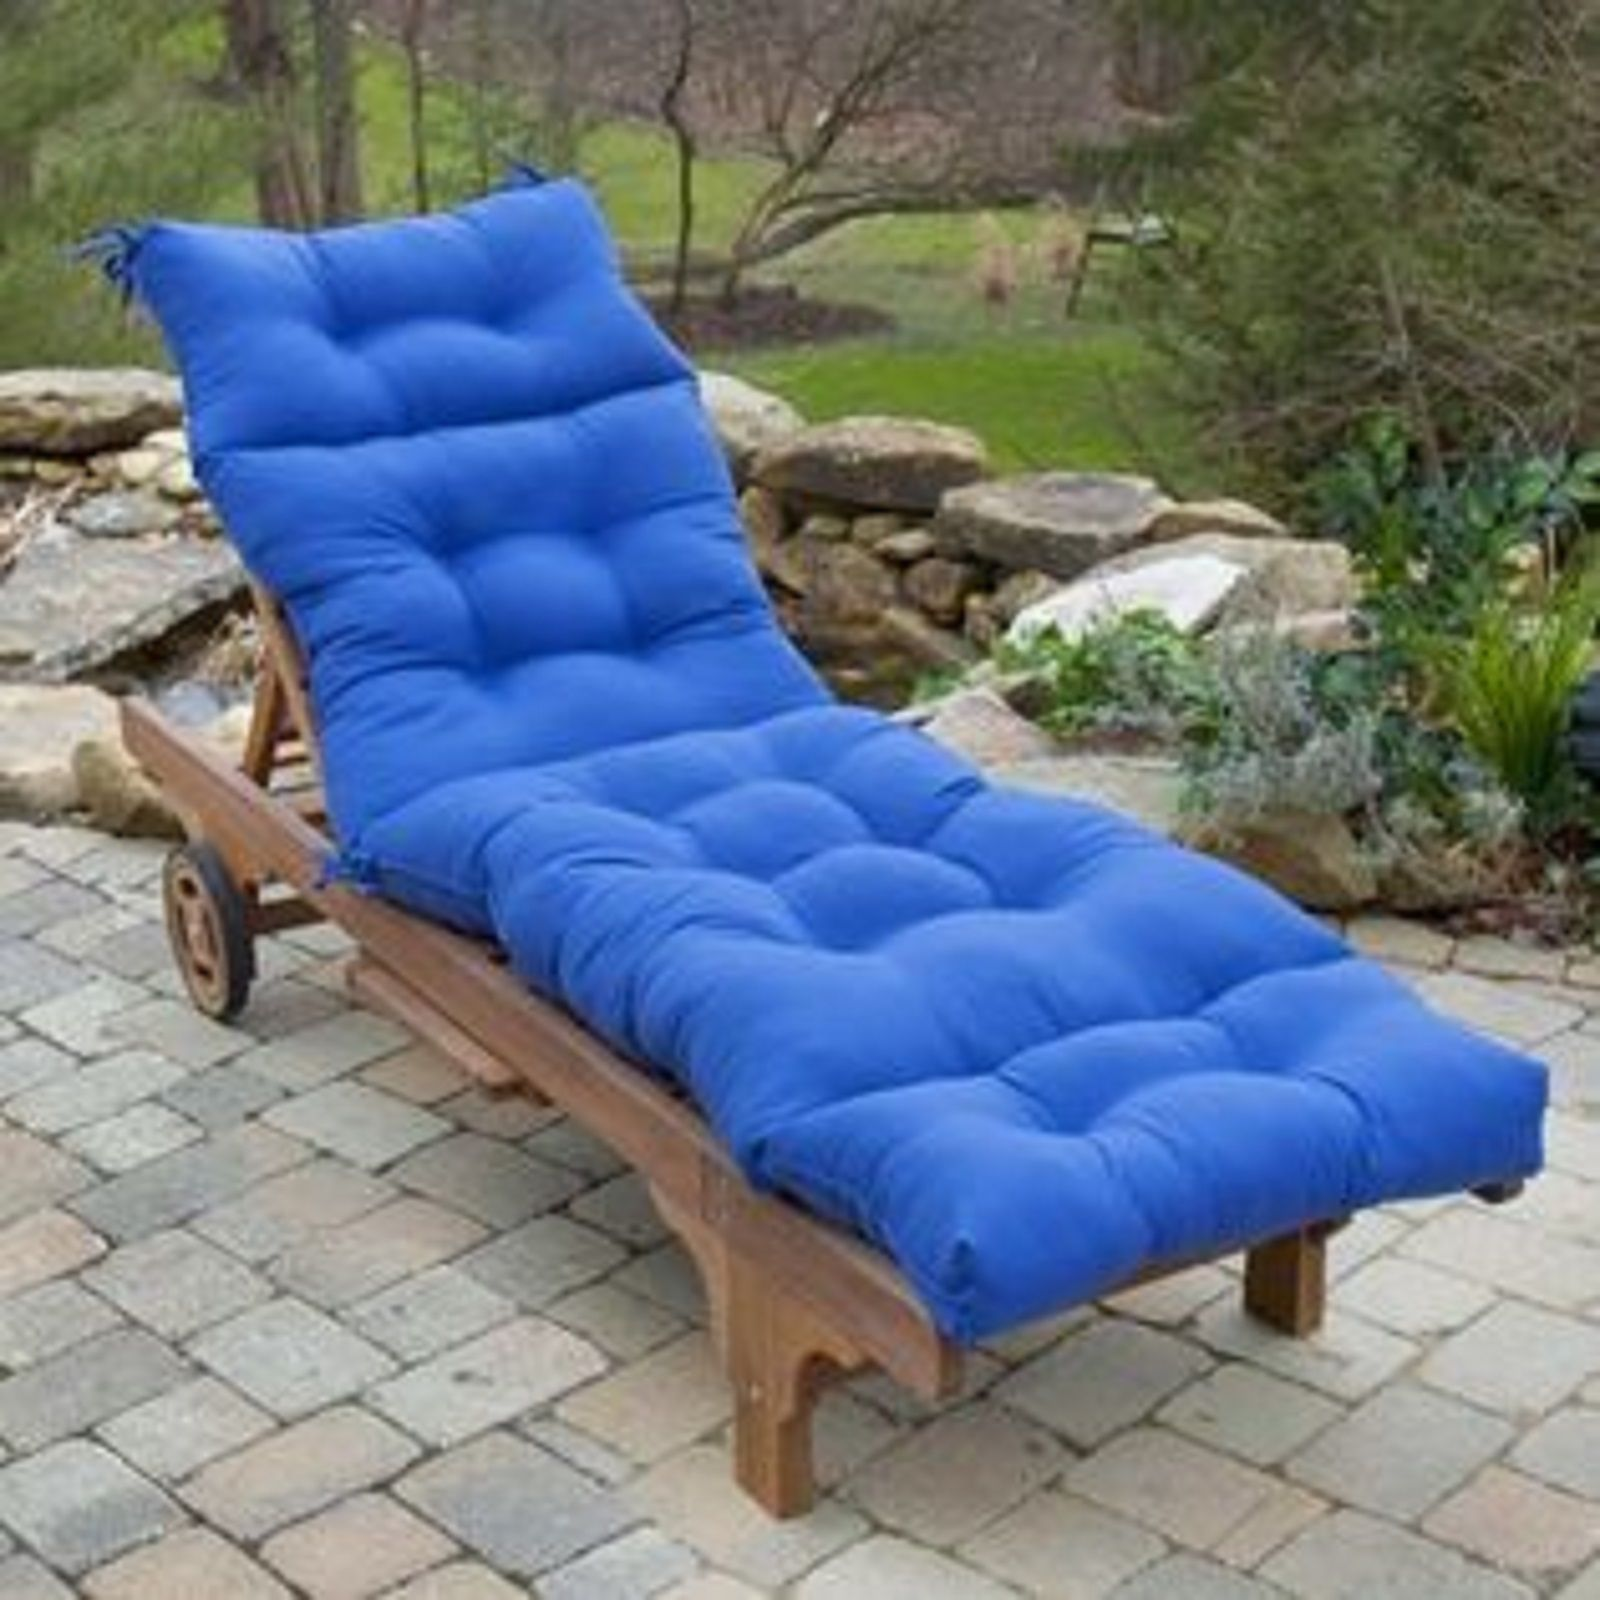 Royal Blue Chaise Lounge Cushions Greendale Home Fashions 20 Outdoor Chair Cushion Outdoor Chaise Lounge Cushions Chaise Lounge Cushions Outdoor Seat Pads